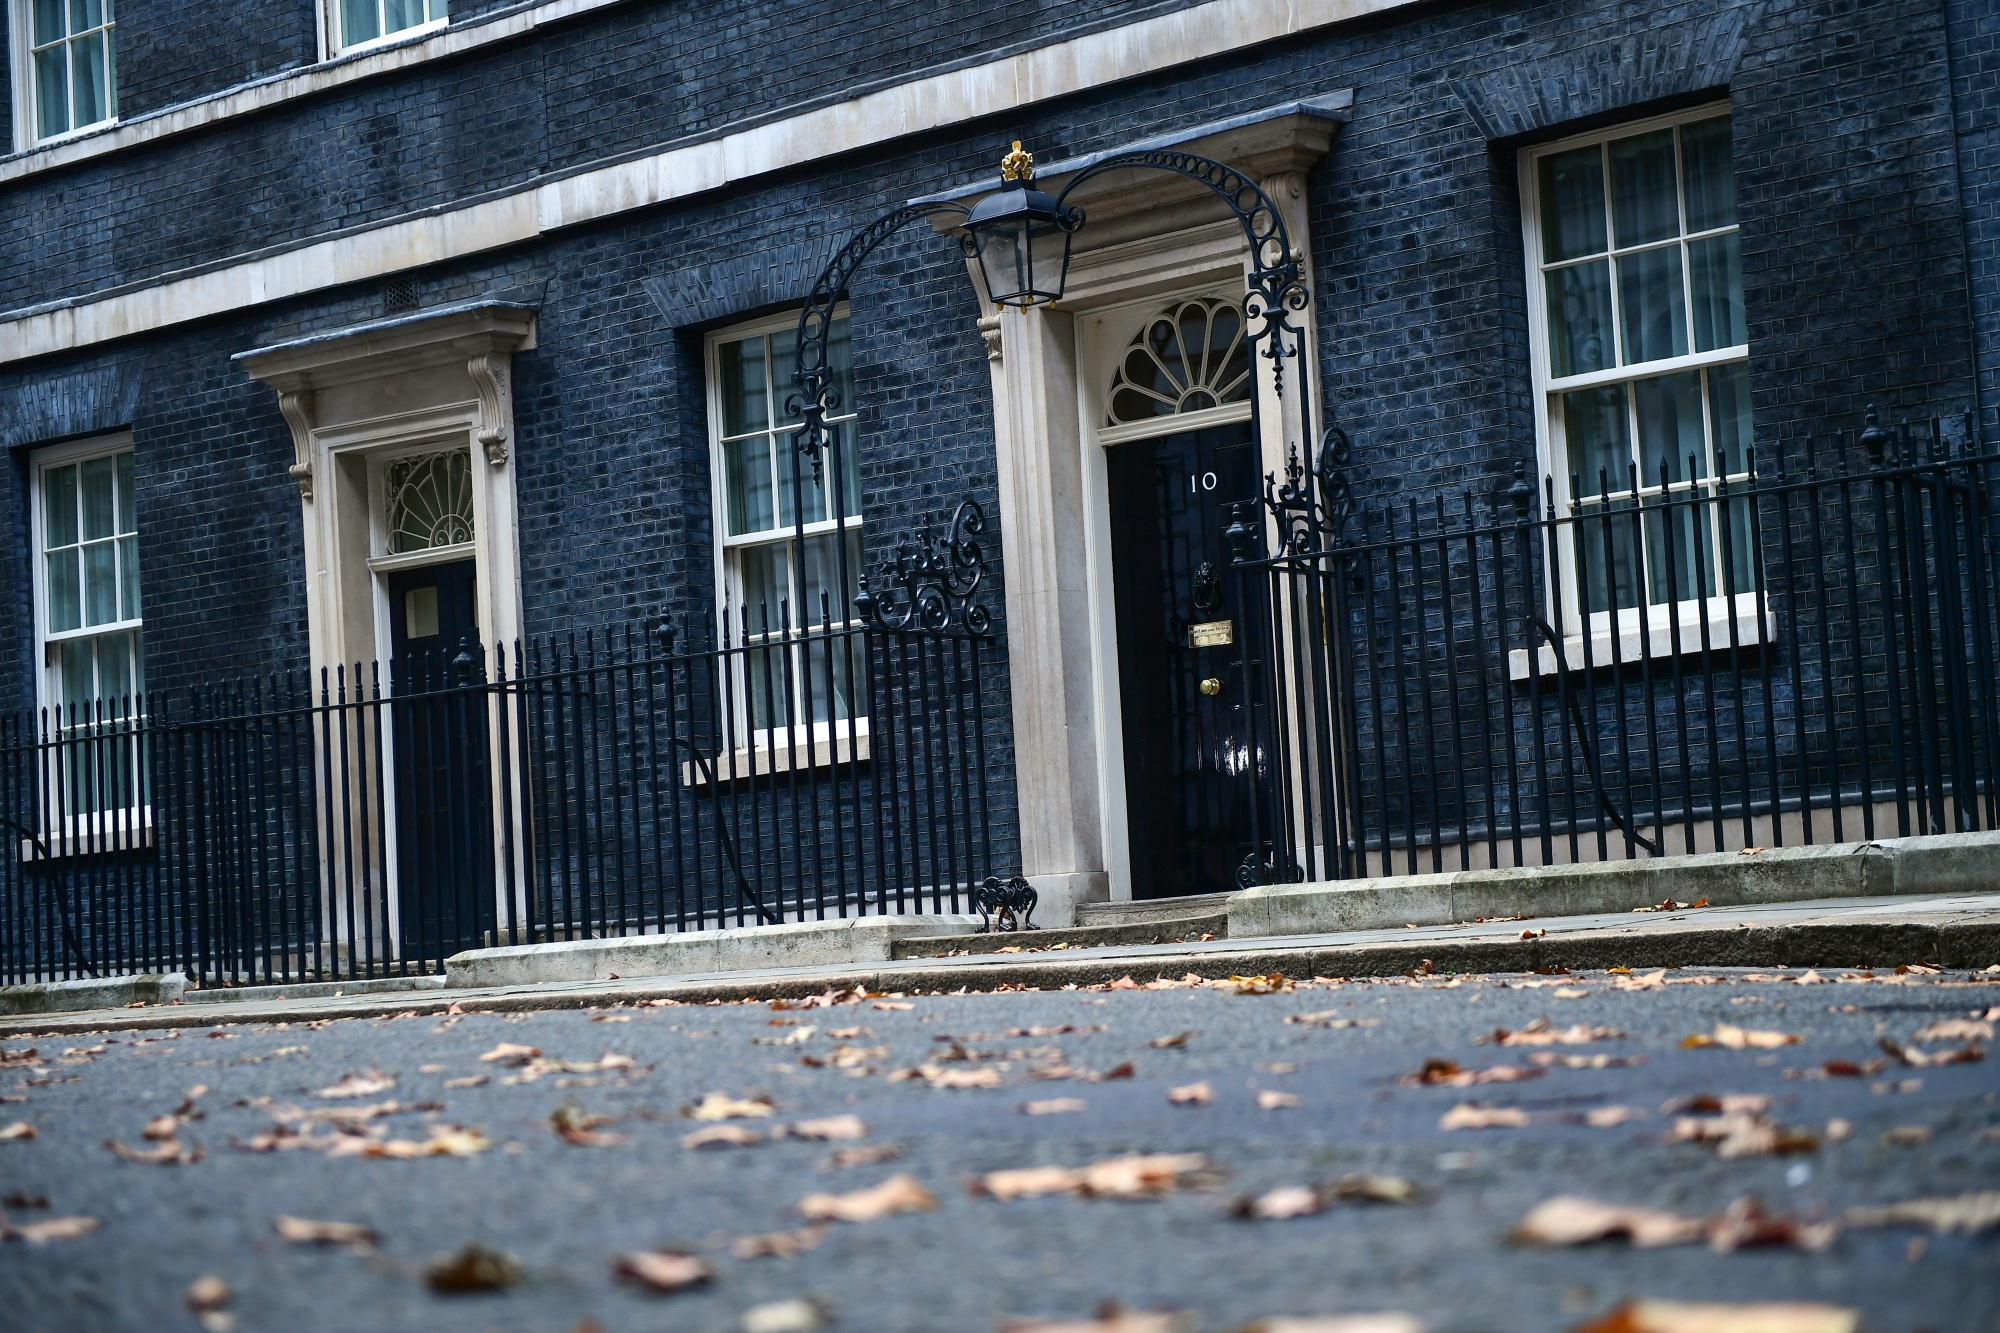 bloomberg.com - James Ludden - Seven Conservatives Plot to Oust Theresa May: Sunday Times